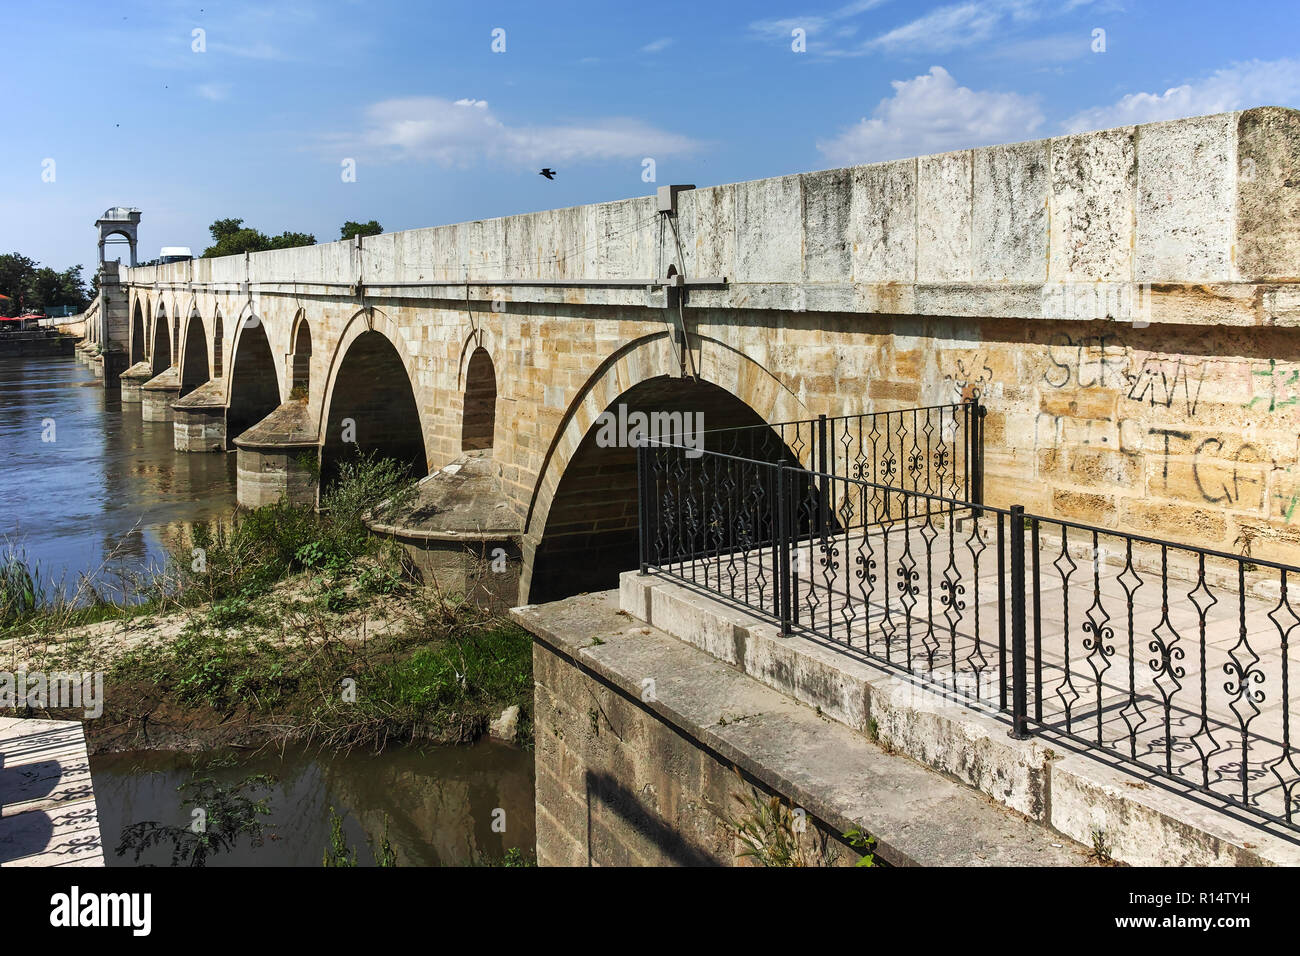 EDIRNE, TURKEY - MAY 26, 2018: Bridge from period of Ottoman Empire over Meric River in city of Edirne,  East Thrace, Turkey - Stock Image